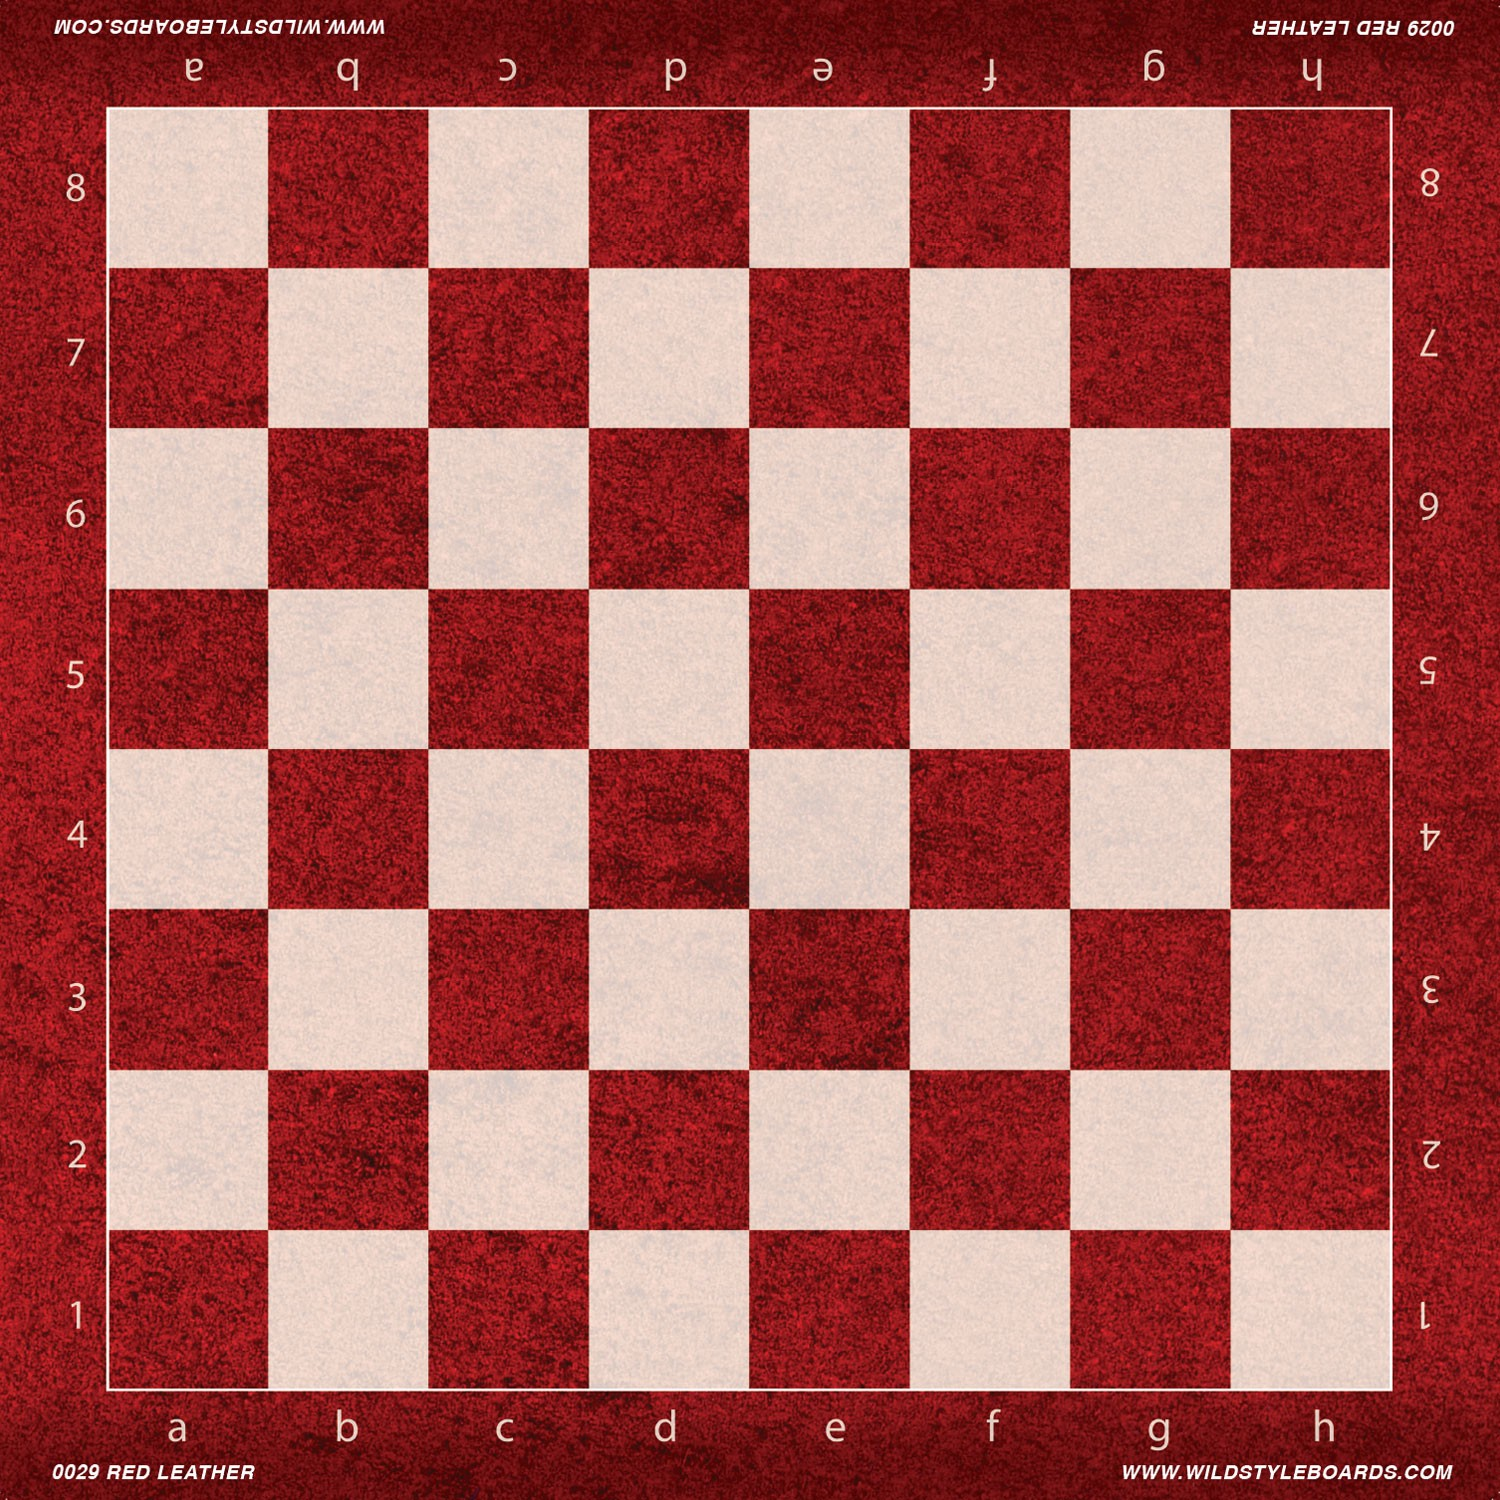 Description Red Leather Are You Bored With Traditional Chess Boards